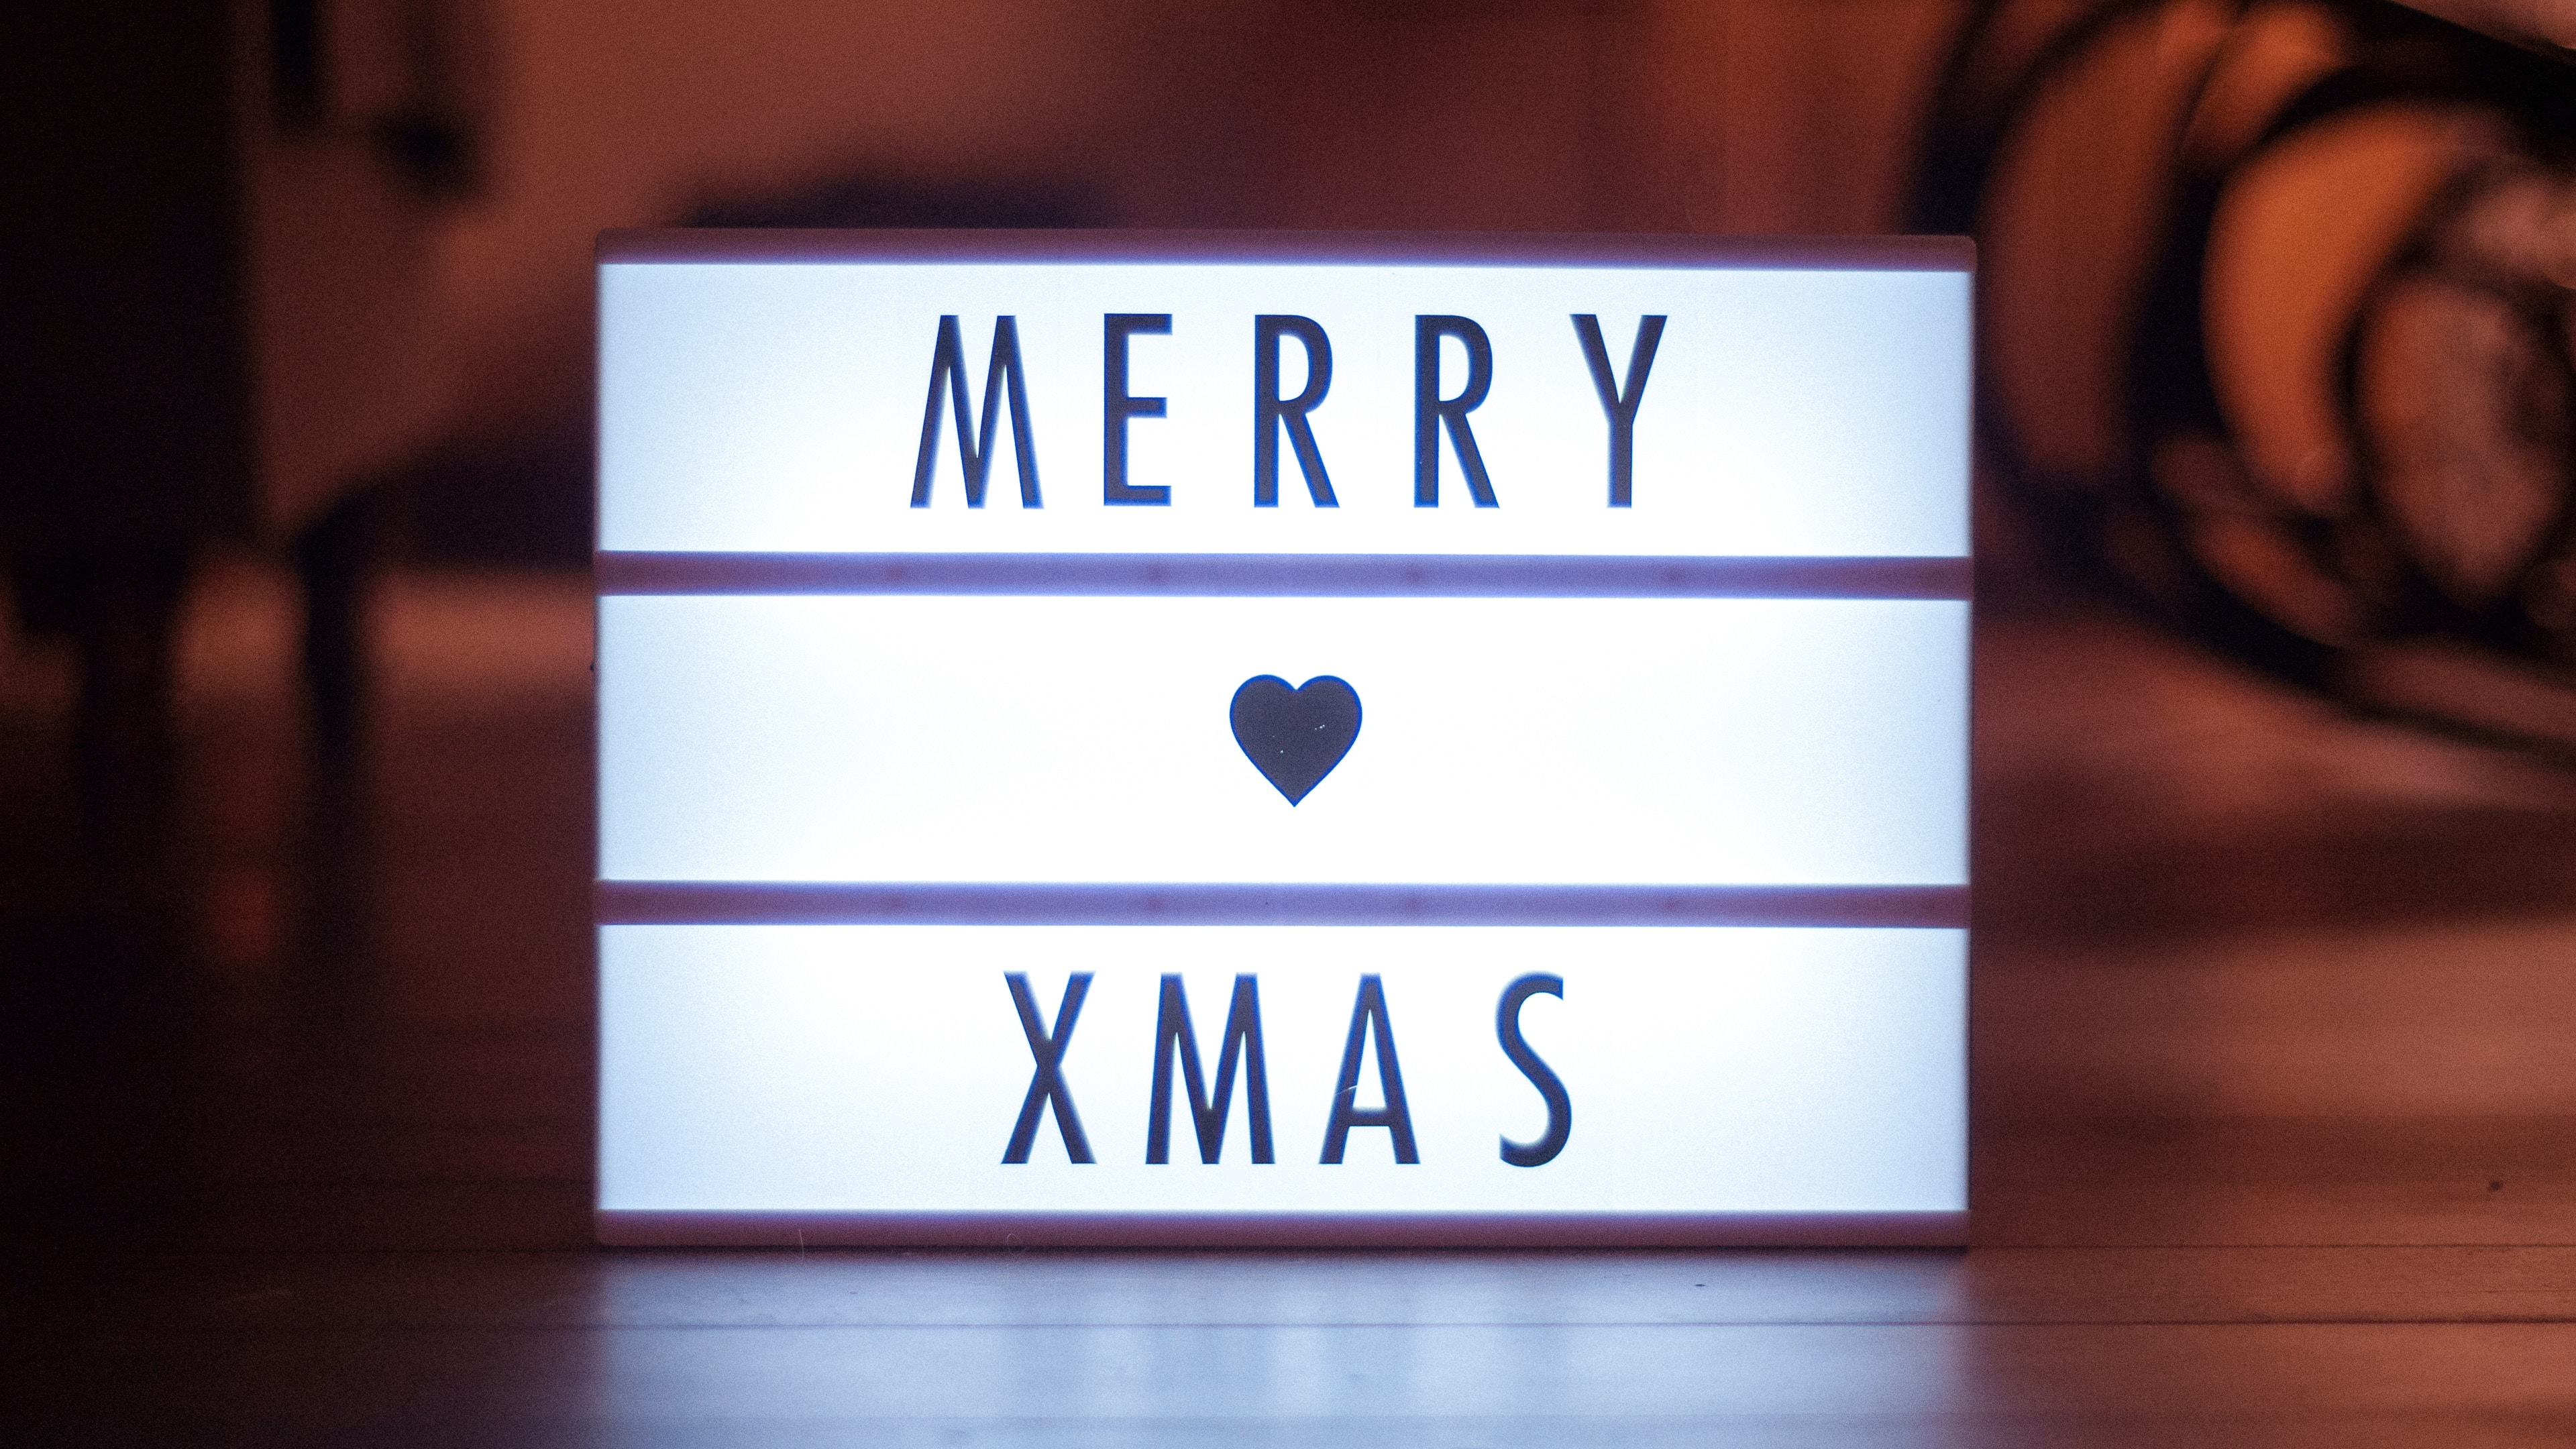 Altitude Media themed promotions light up box with merry xmas written on front